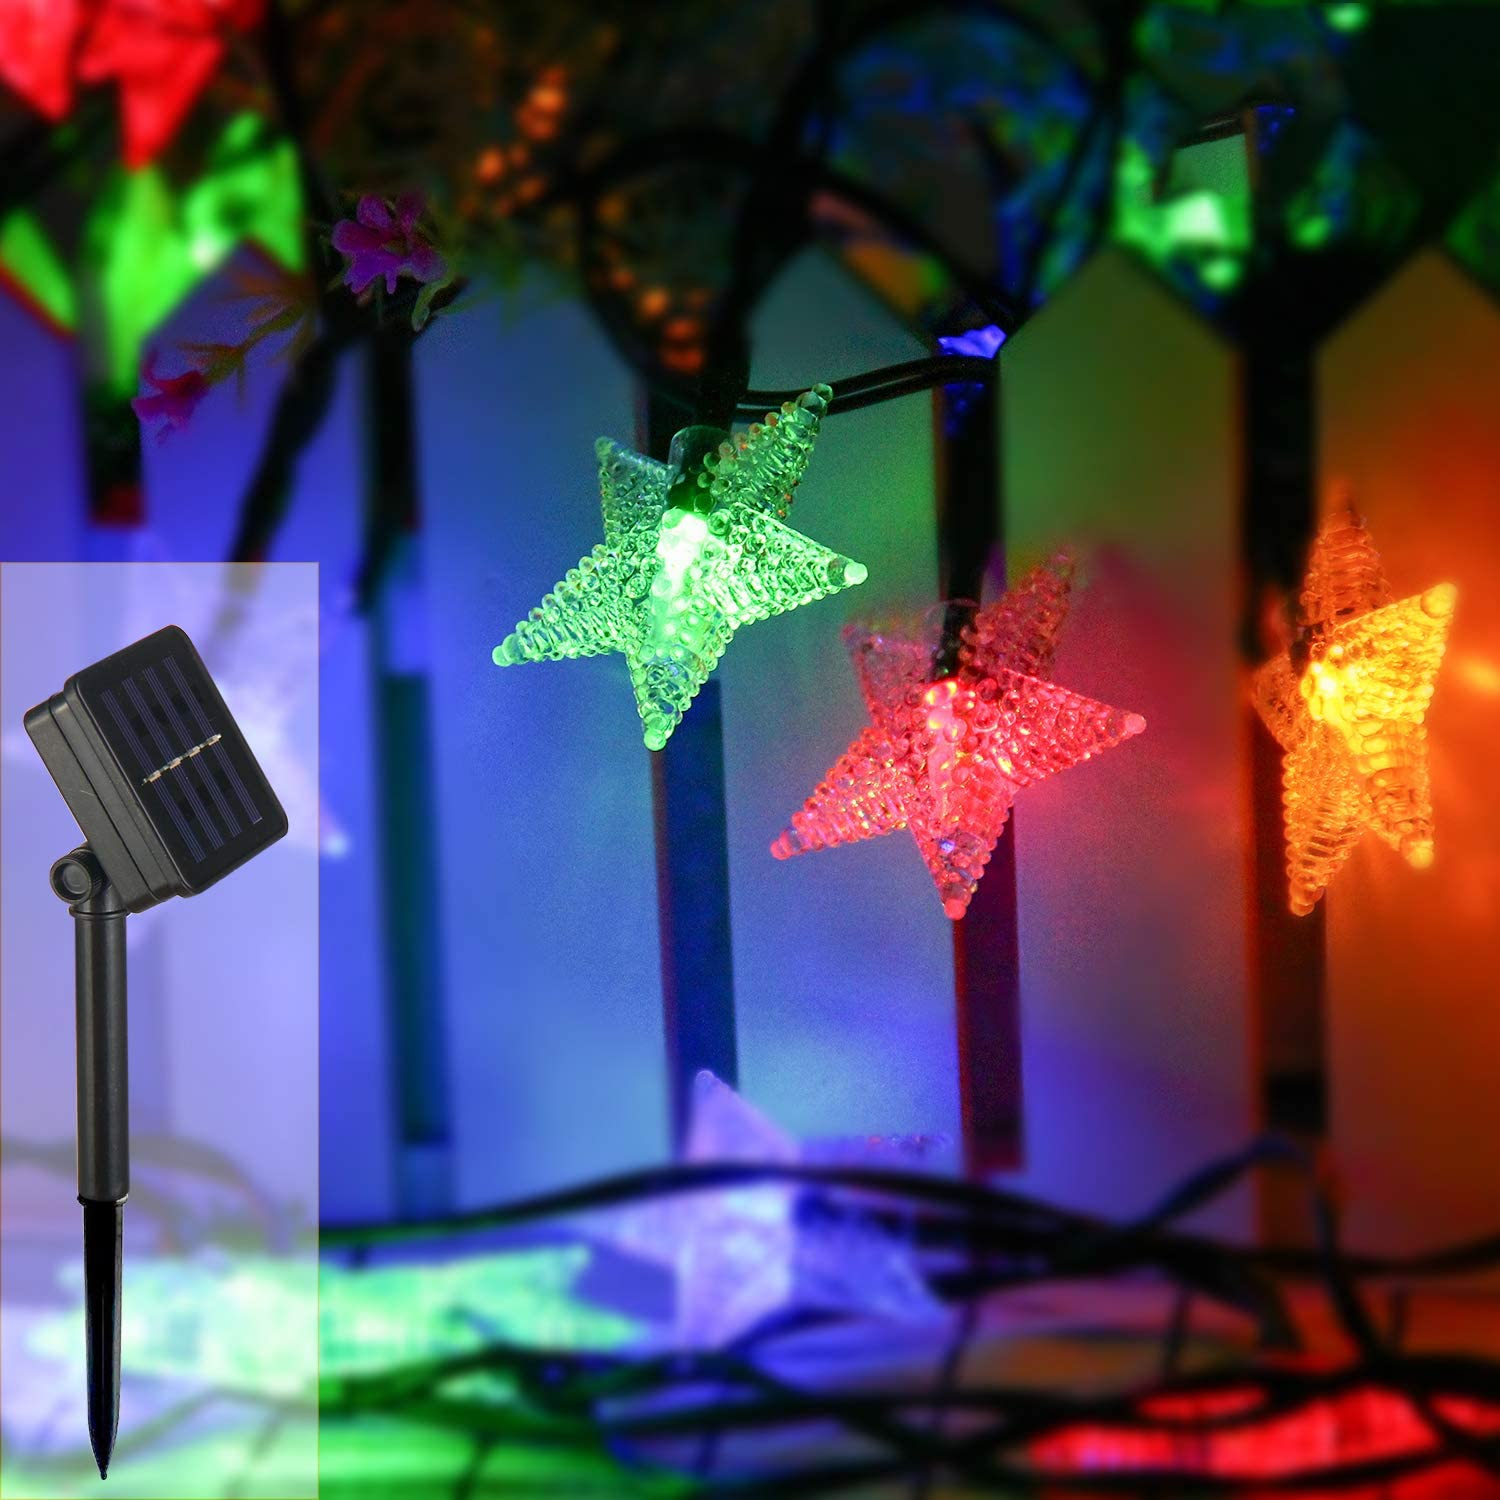 Waterproof Outdoor Solar Lights for Home//Yard//Patio//Garden ZOUTOG Solar Star Lights 40ft//12m 80 LED Colorful Star String Lights